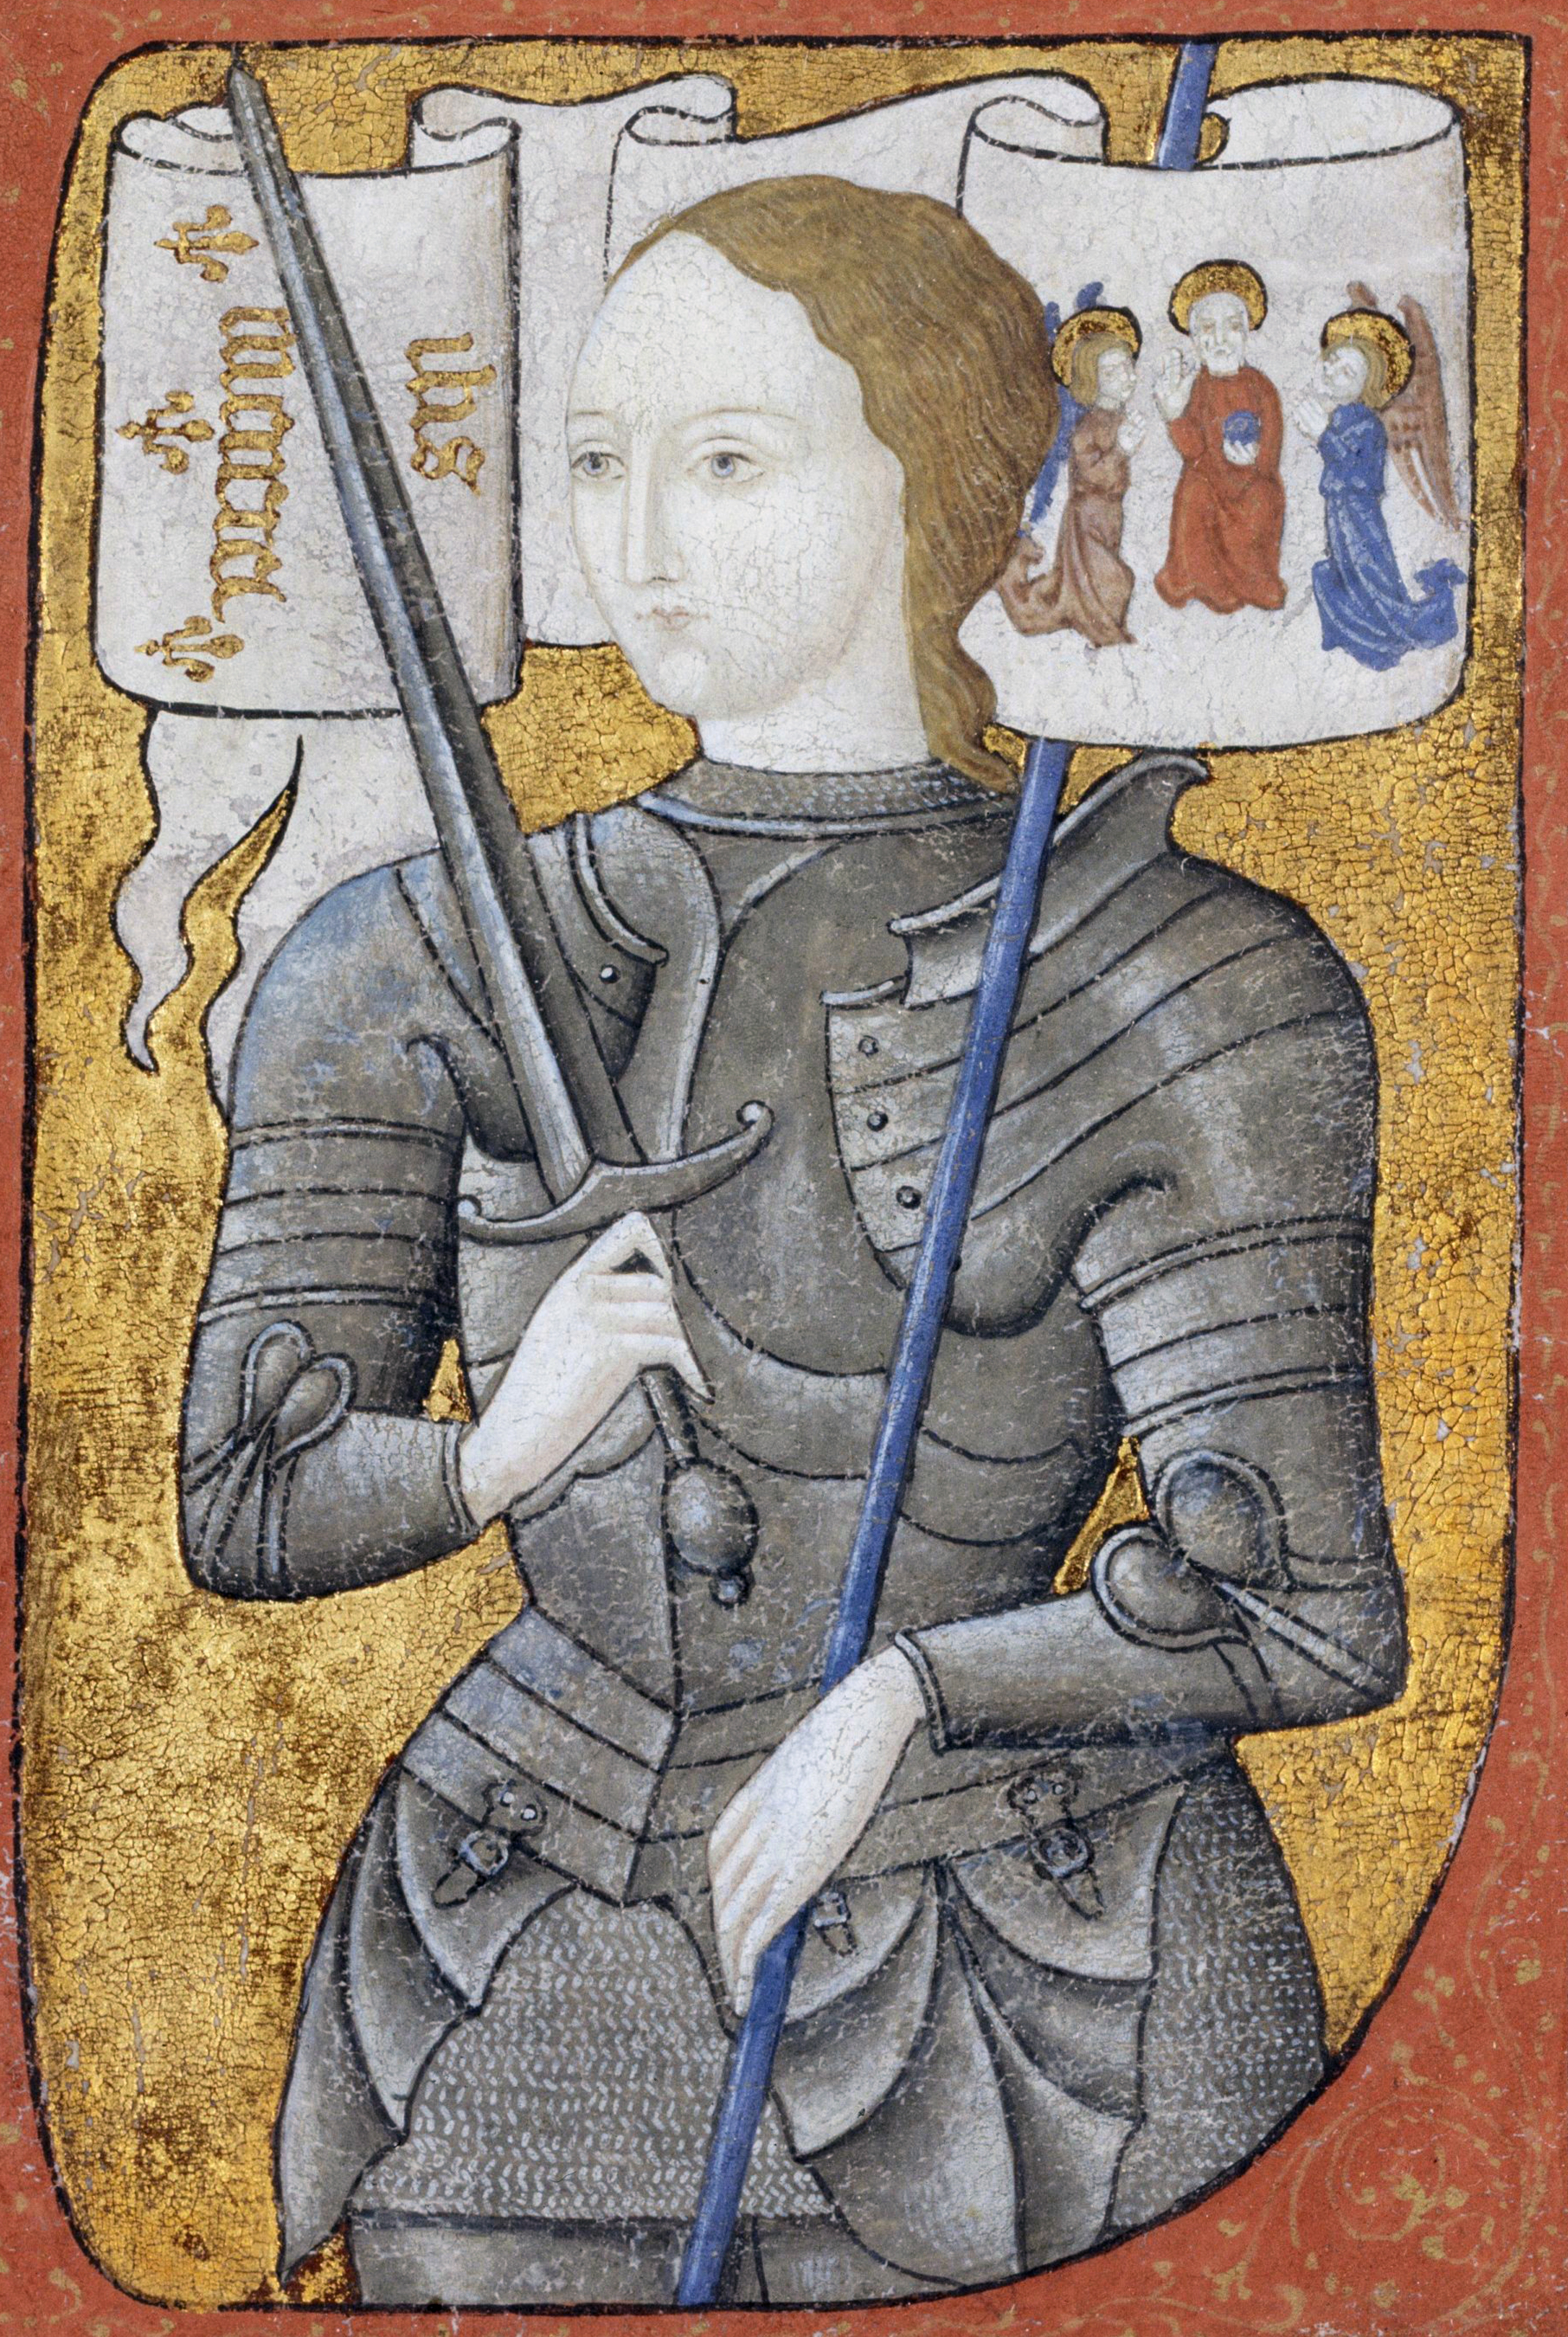 Depiction of Juana de Arco